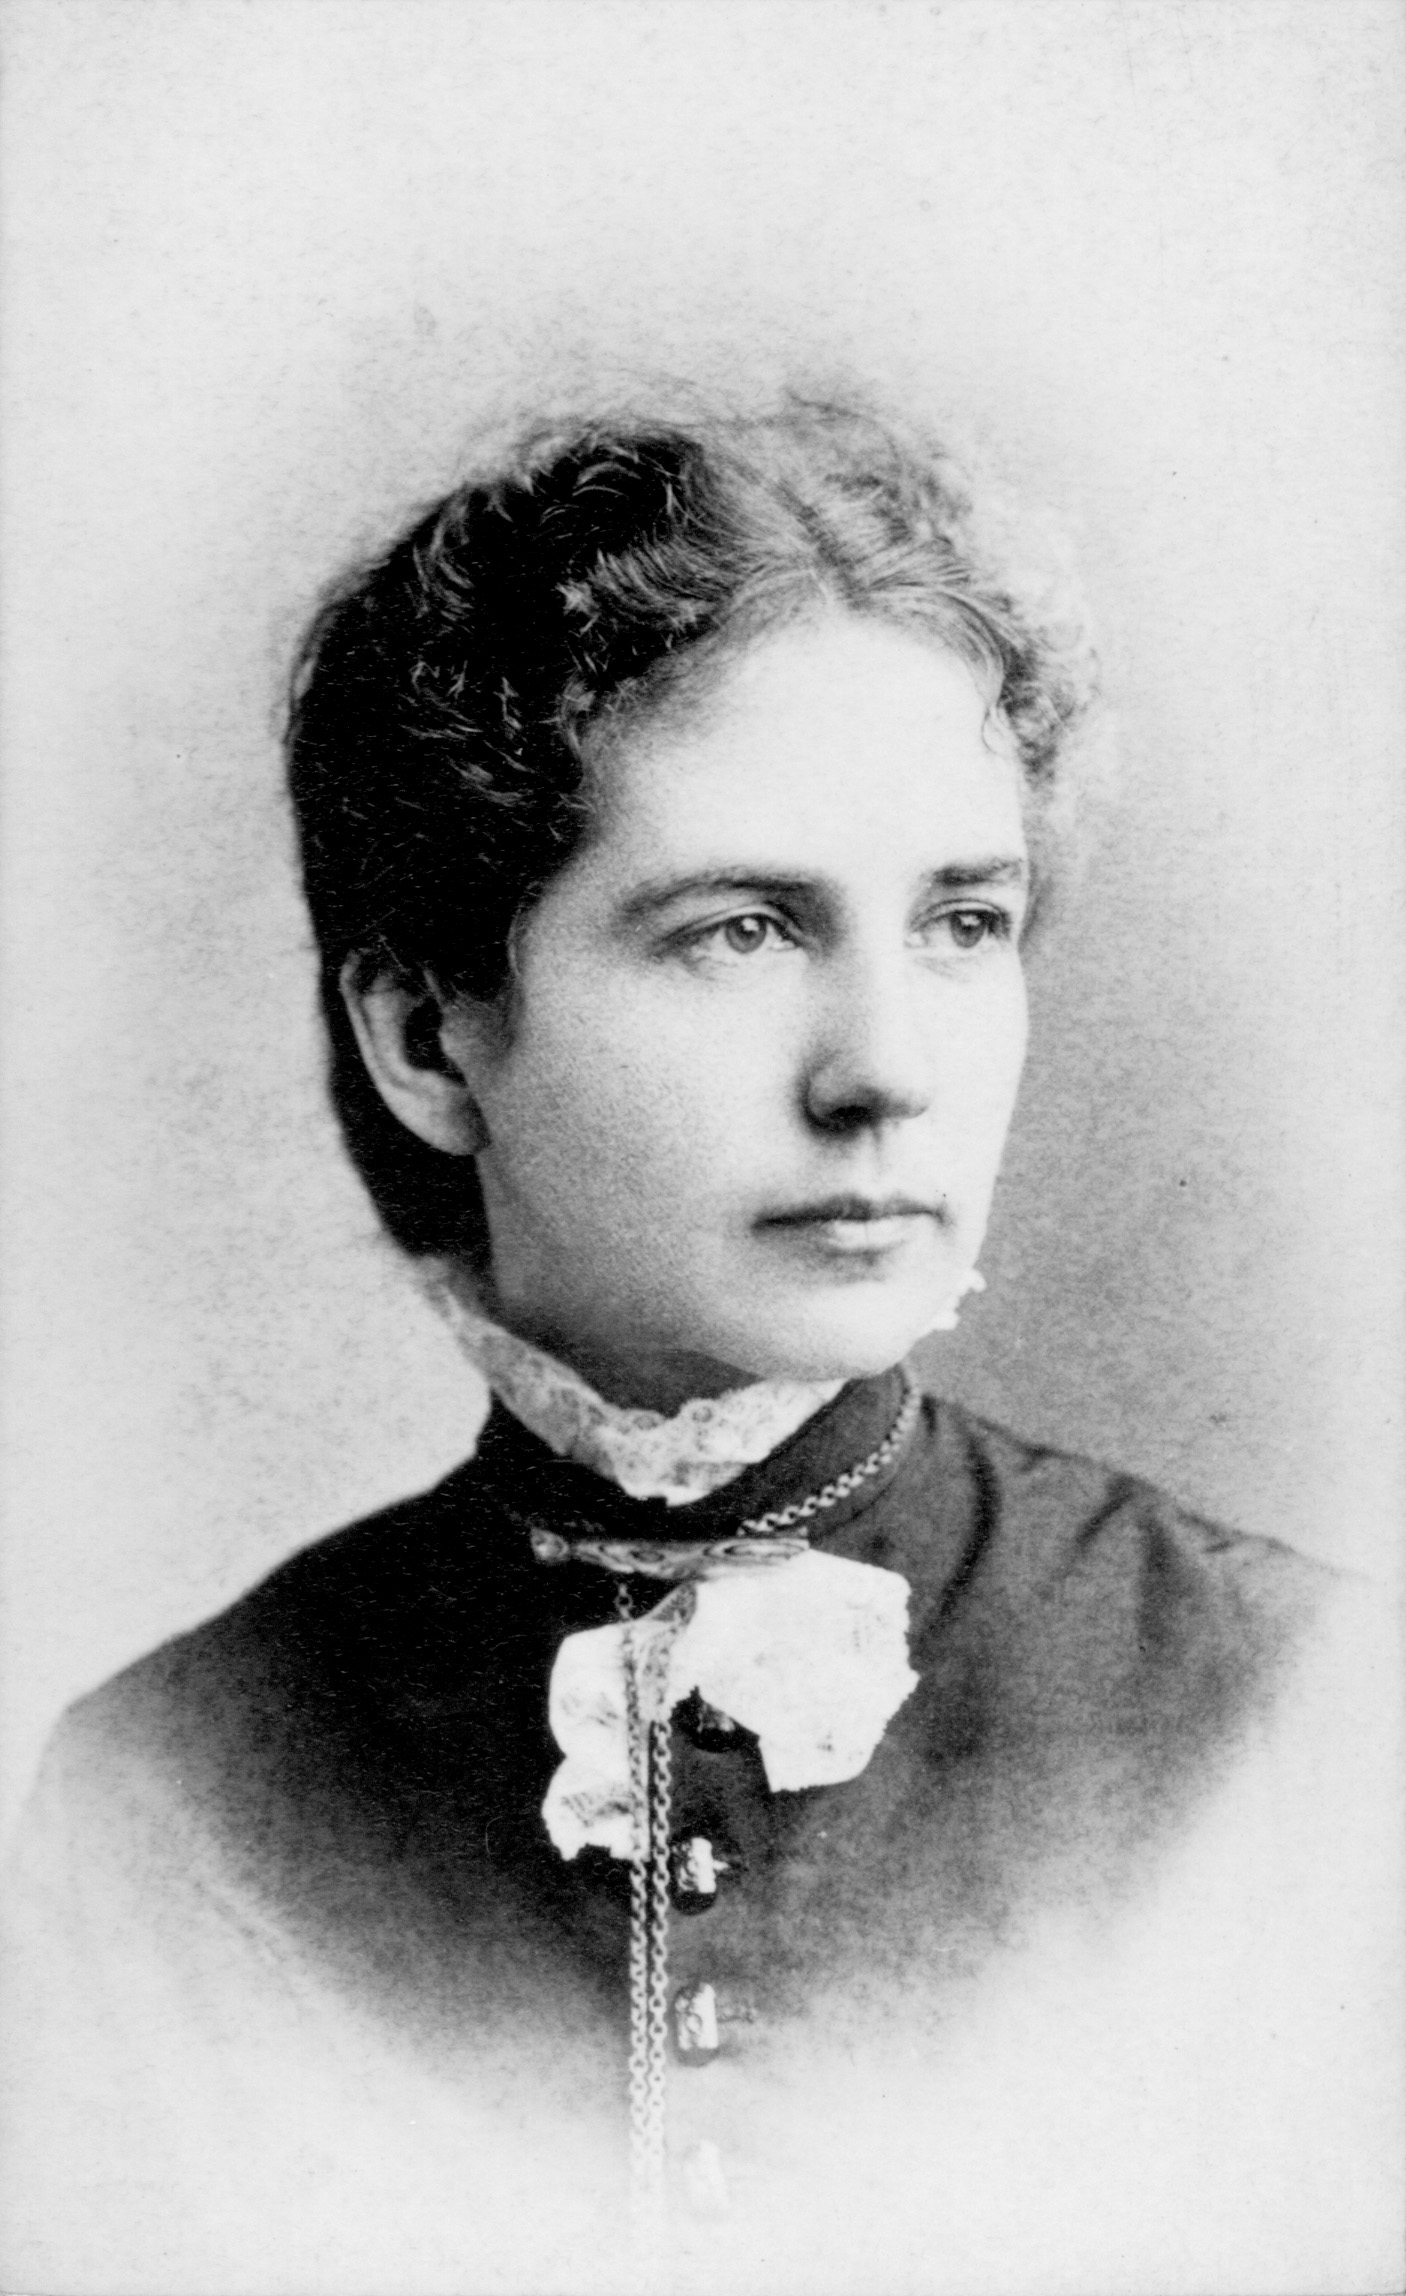 Gertrude Howe as a young missionary. Courtesy of the General Commission on Archives and History, United Methodist Church.